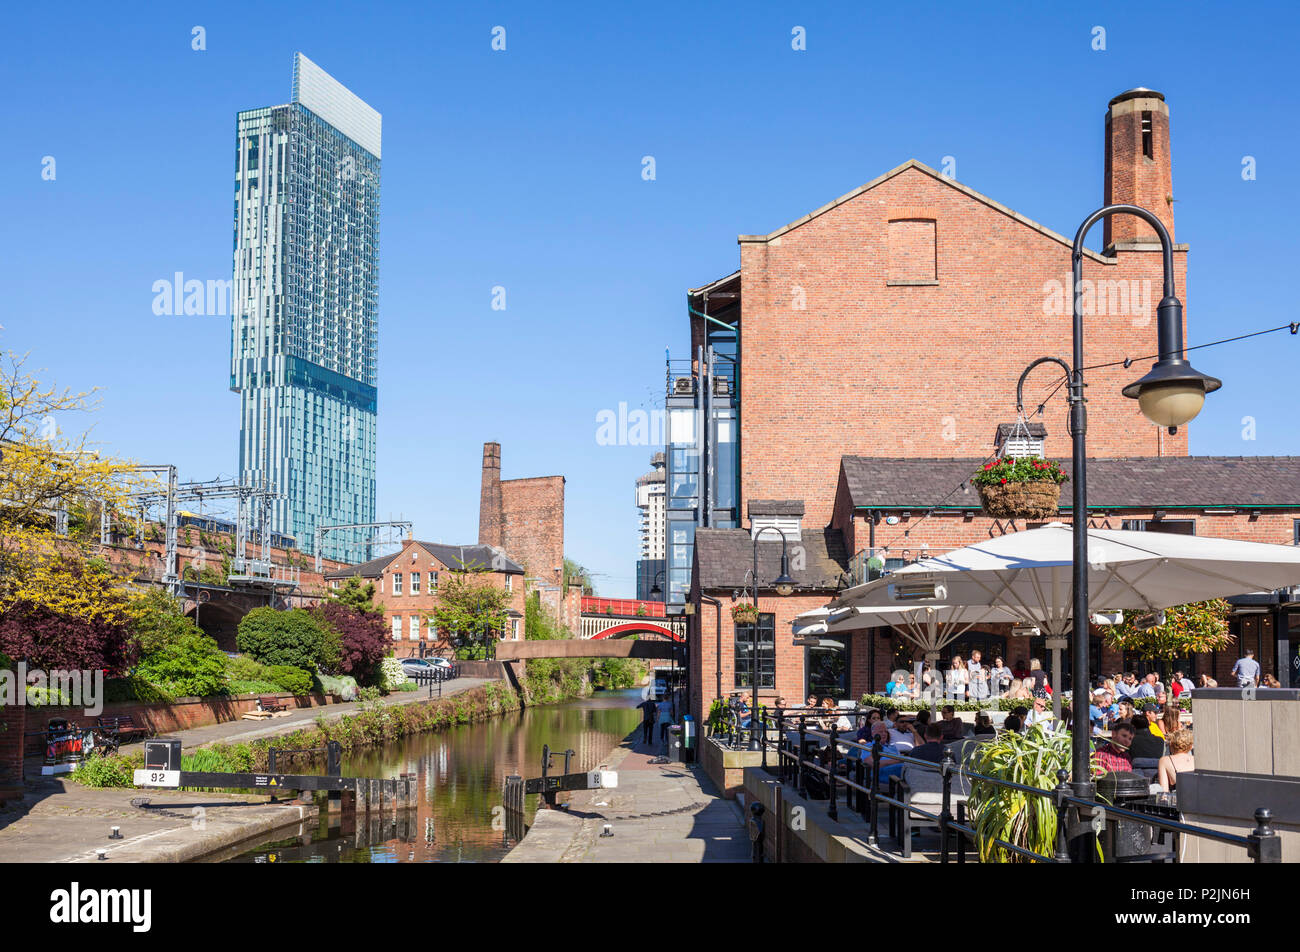 England Manchester England greater Manchester City centre city center view of the beetham tower and bridgewater canal with canal towpath manchester uk - Stock Image